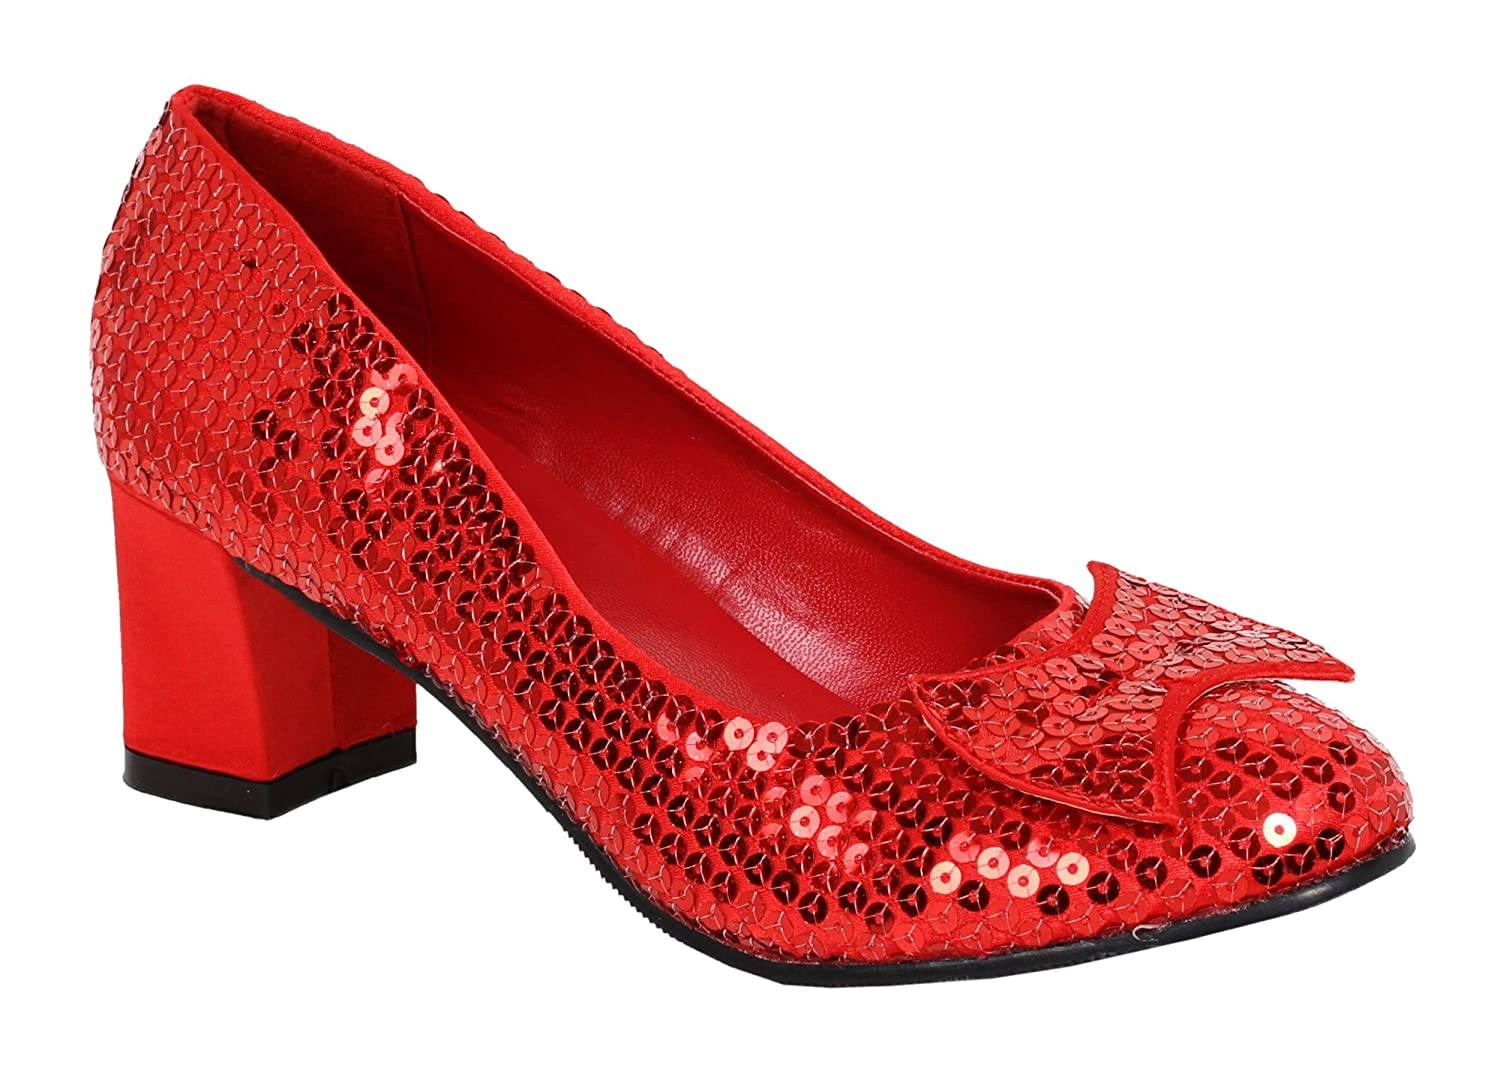 BirthdayExpress Judy Sequin (Red) Adult Shoes - 9